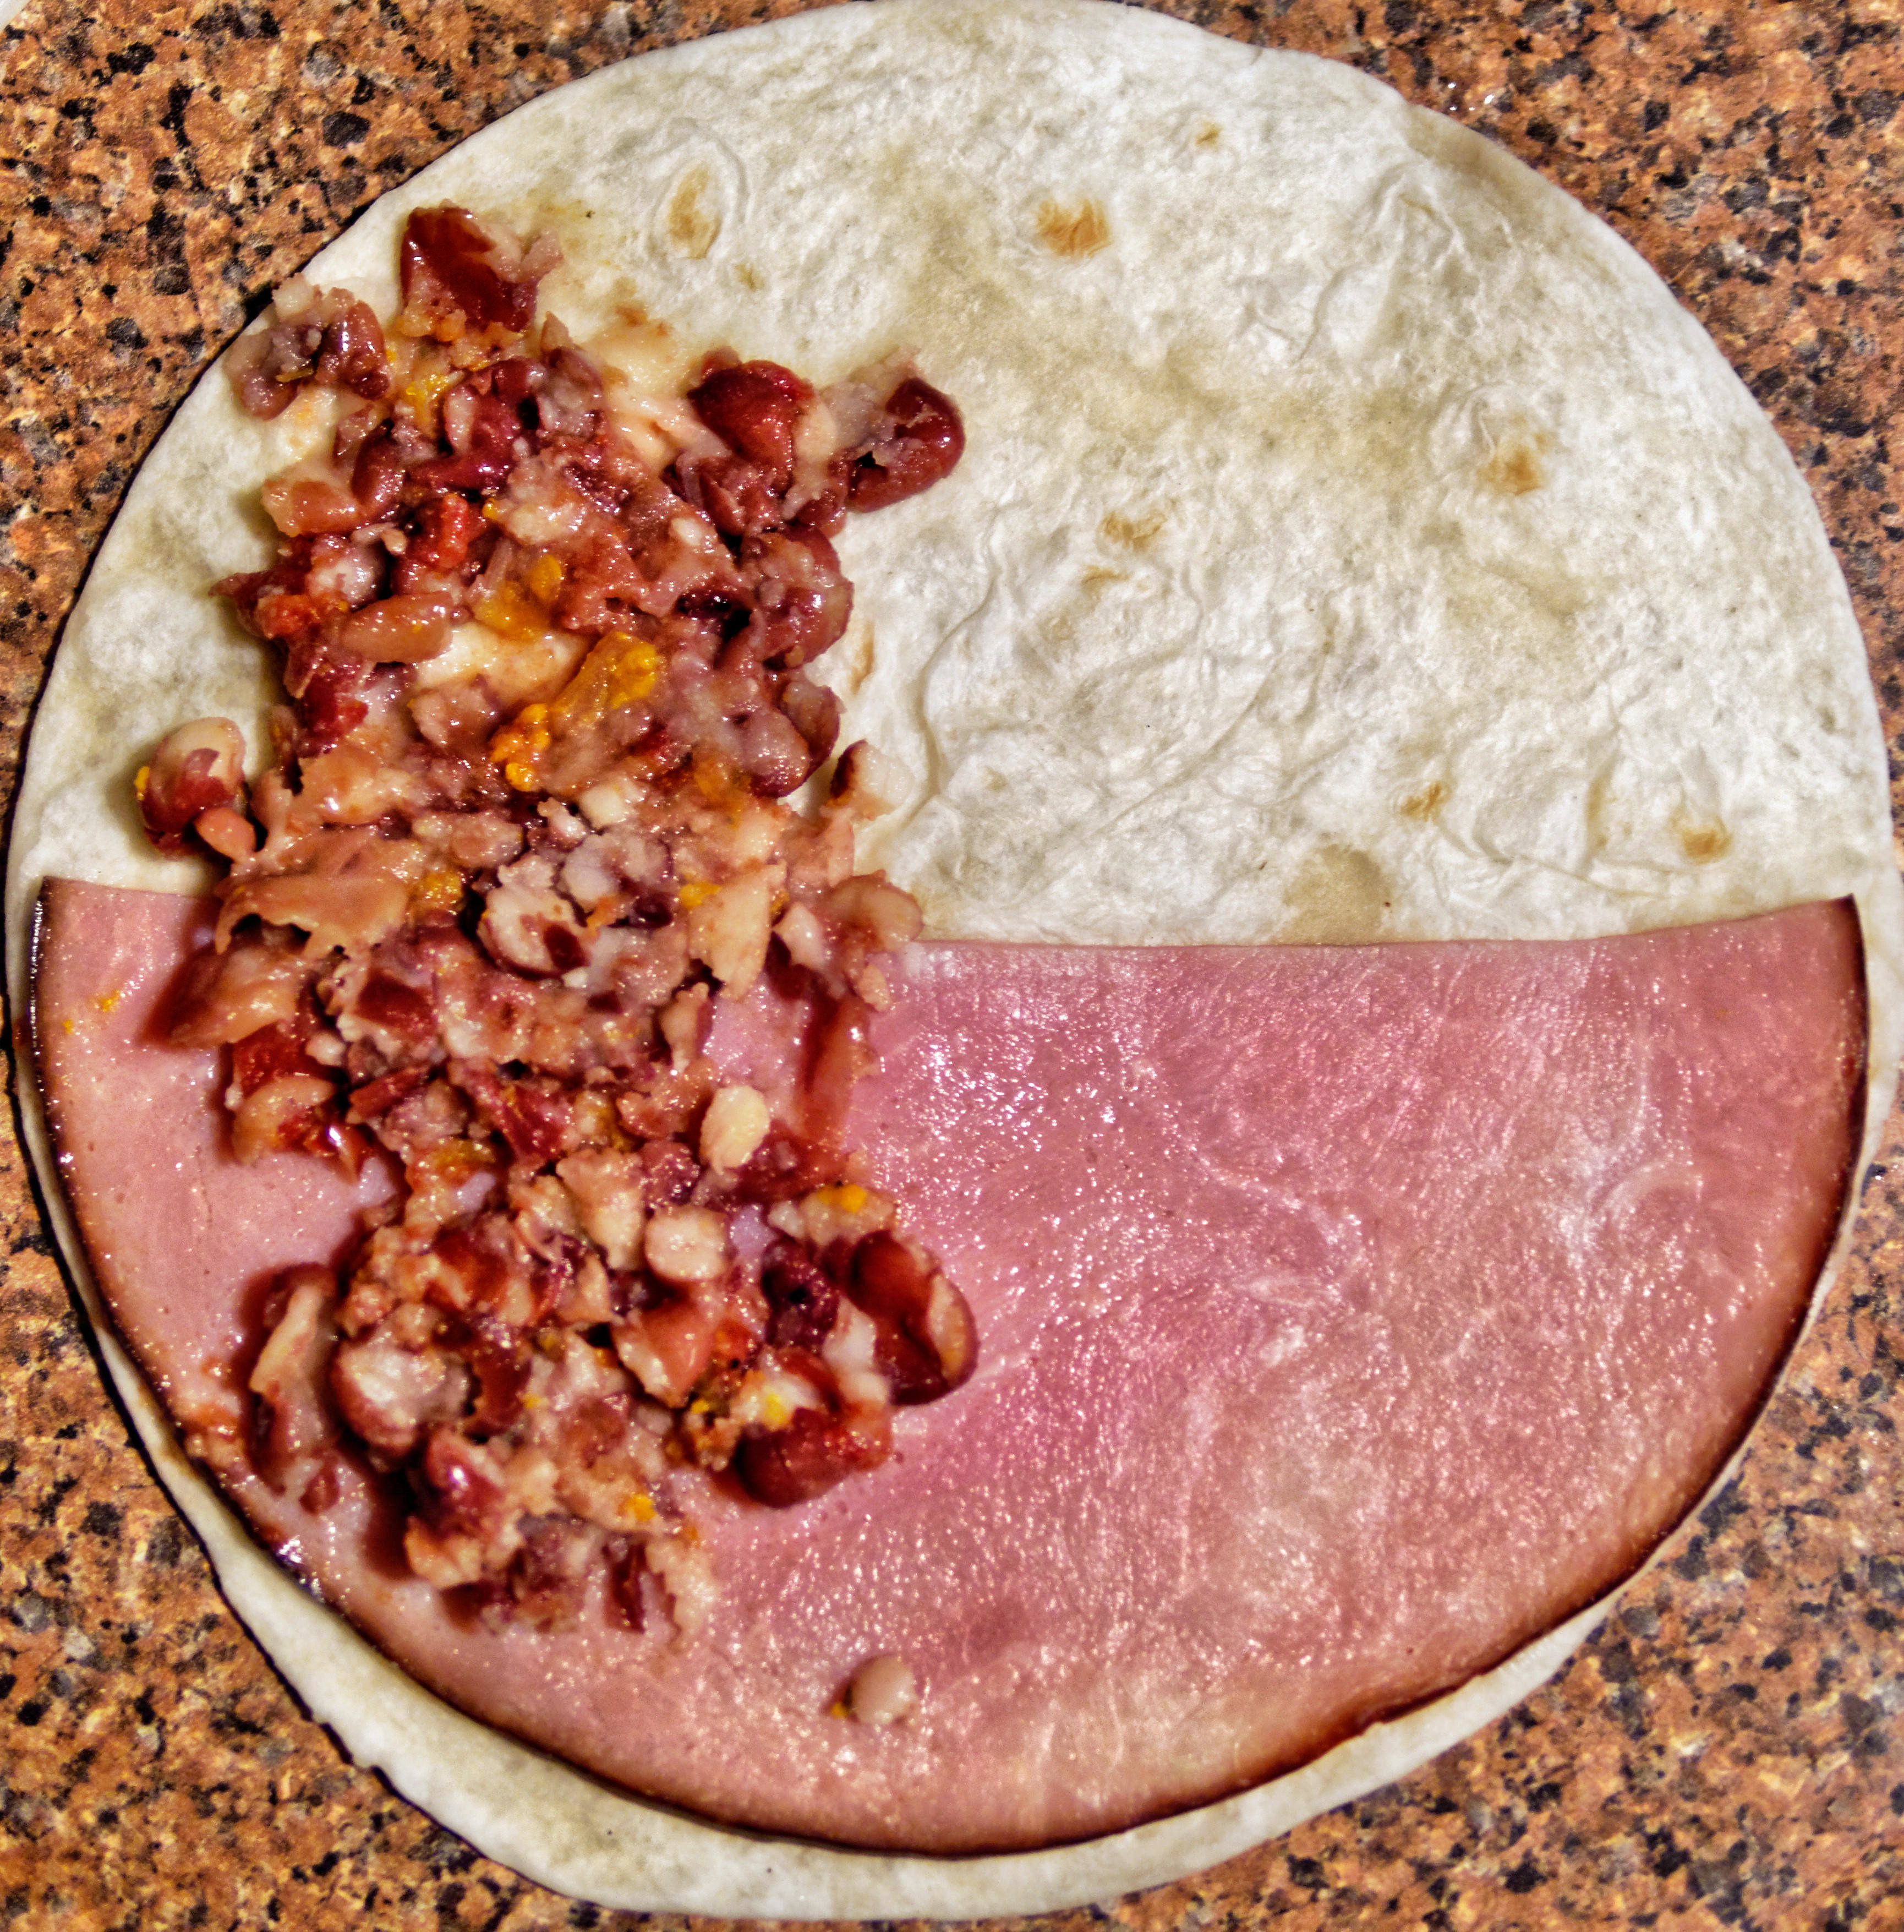 This should be Quesadillas-1.jpeg.  Is it missing?